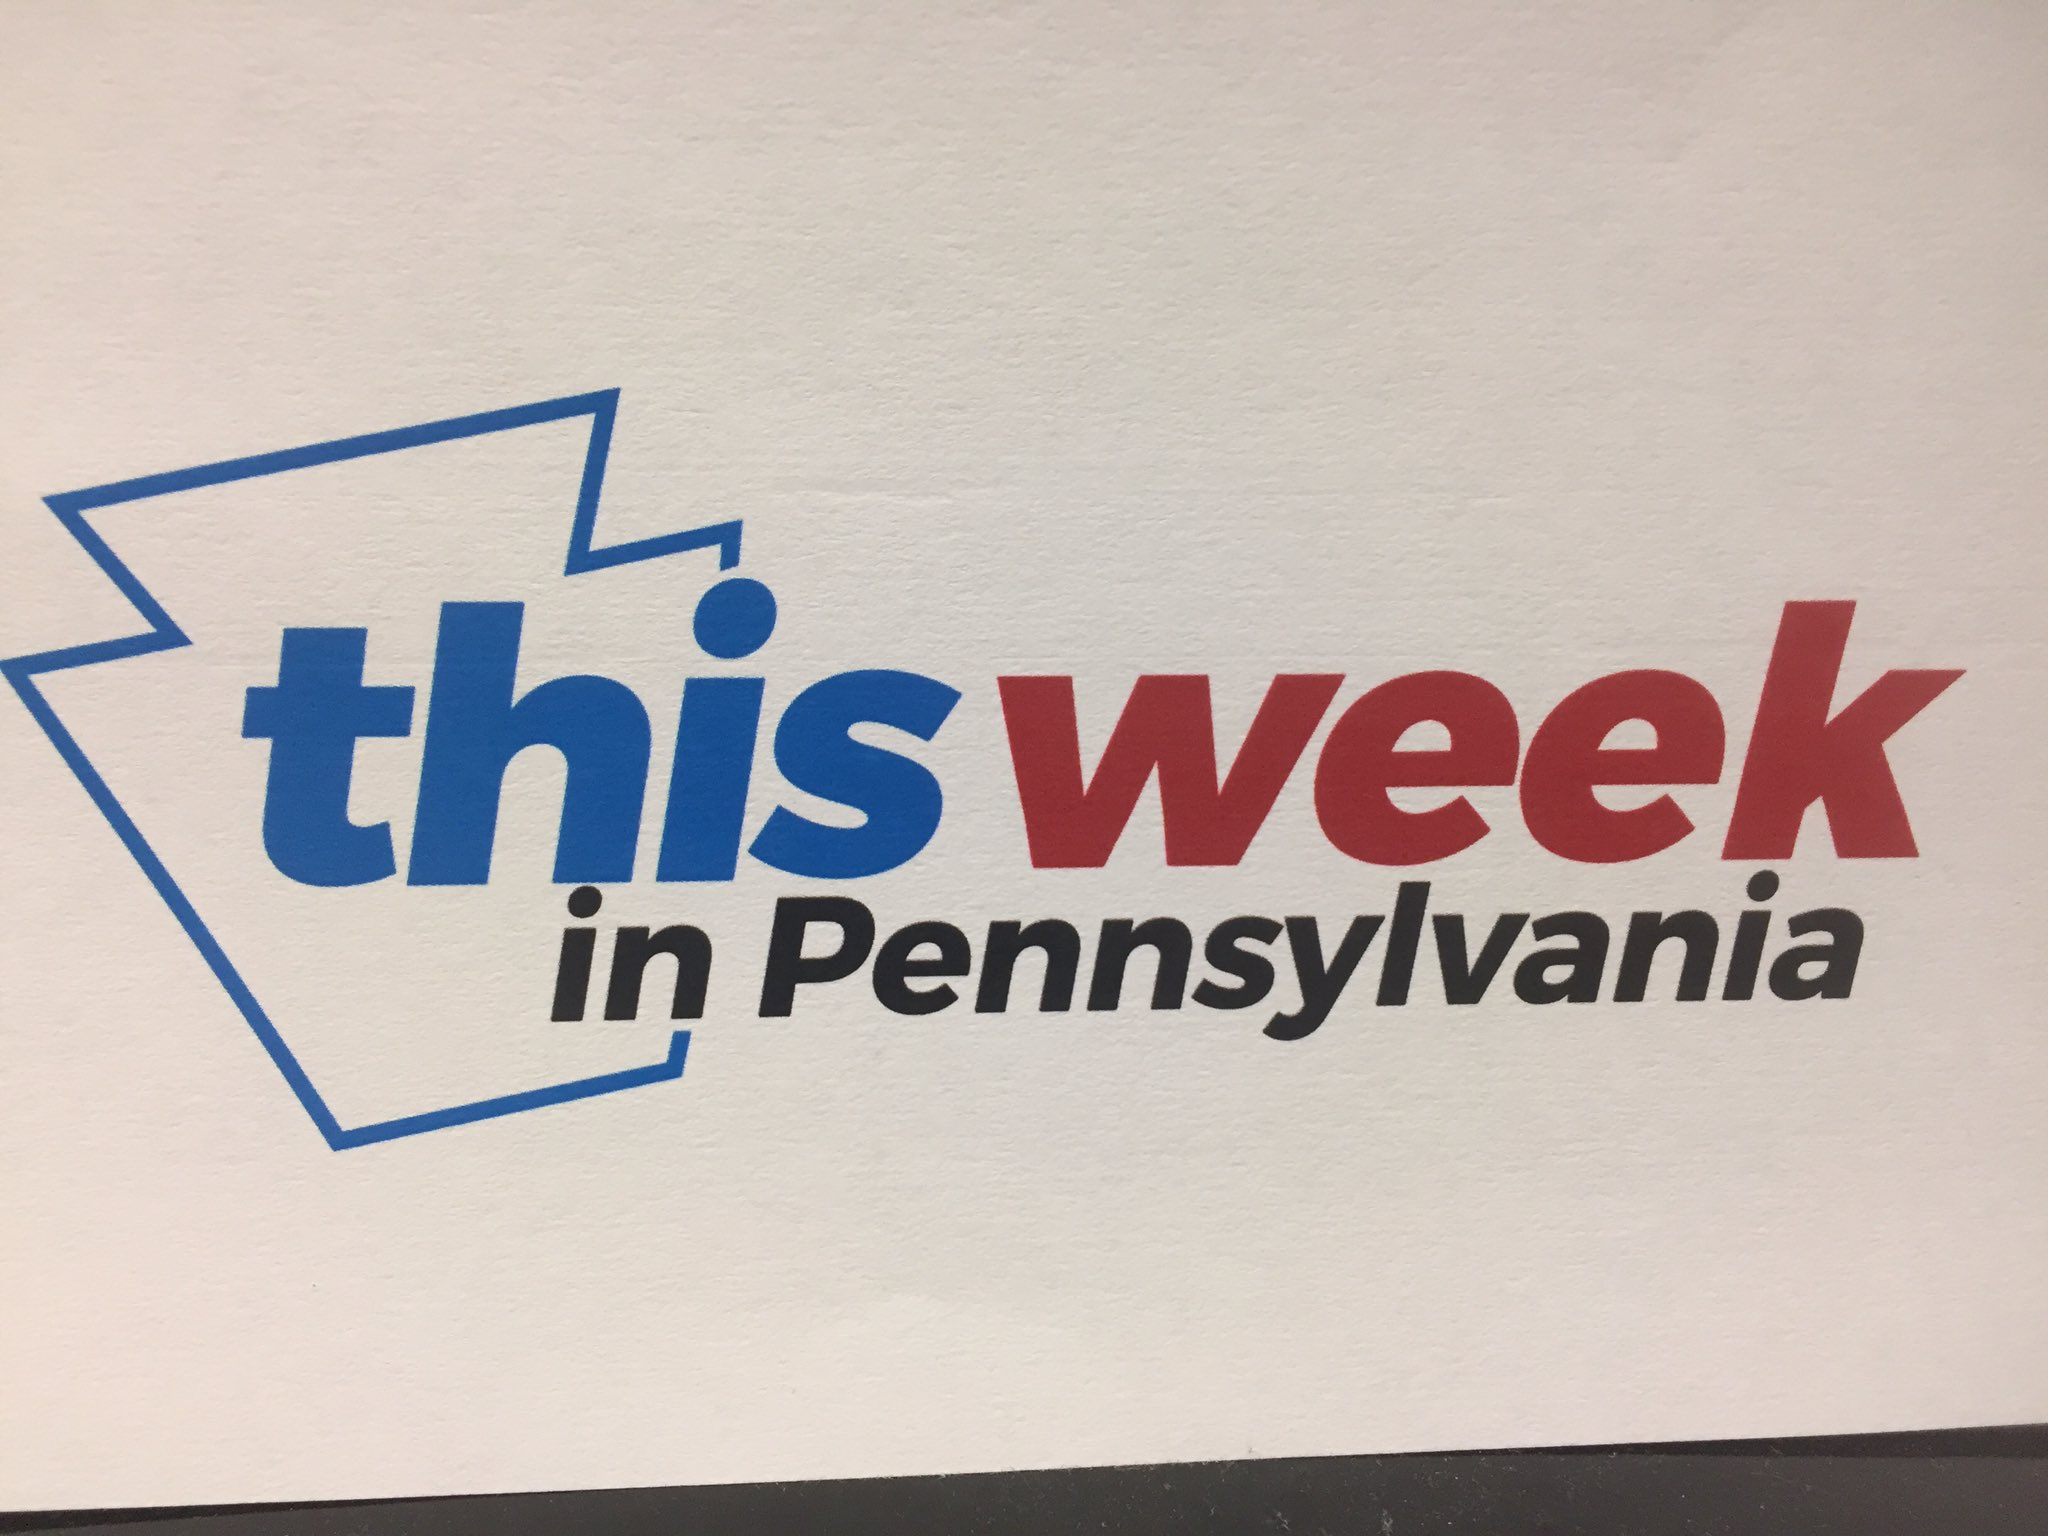 This week in PA_1499303314457.jpg